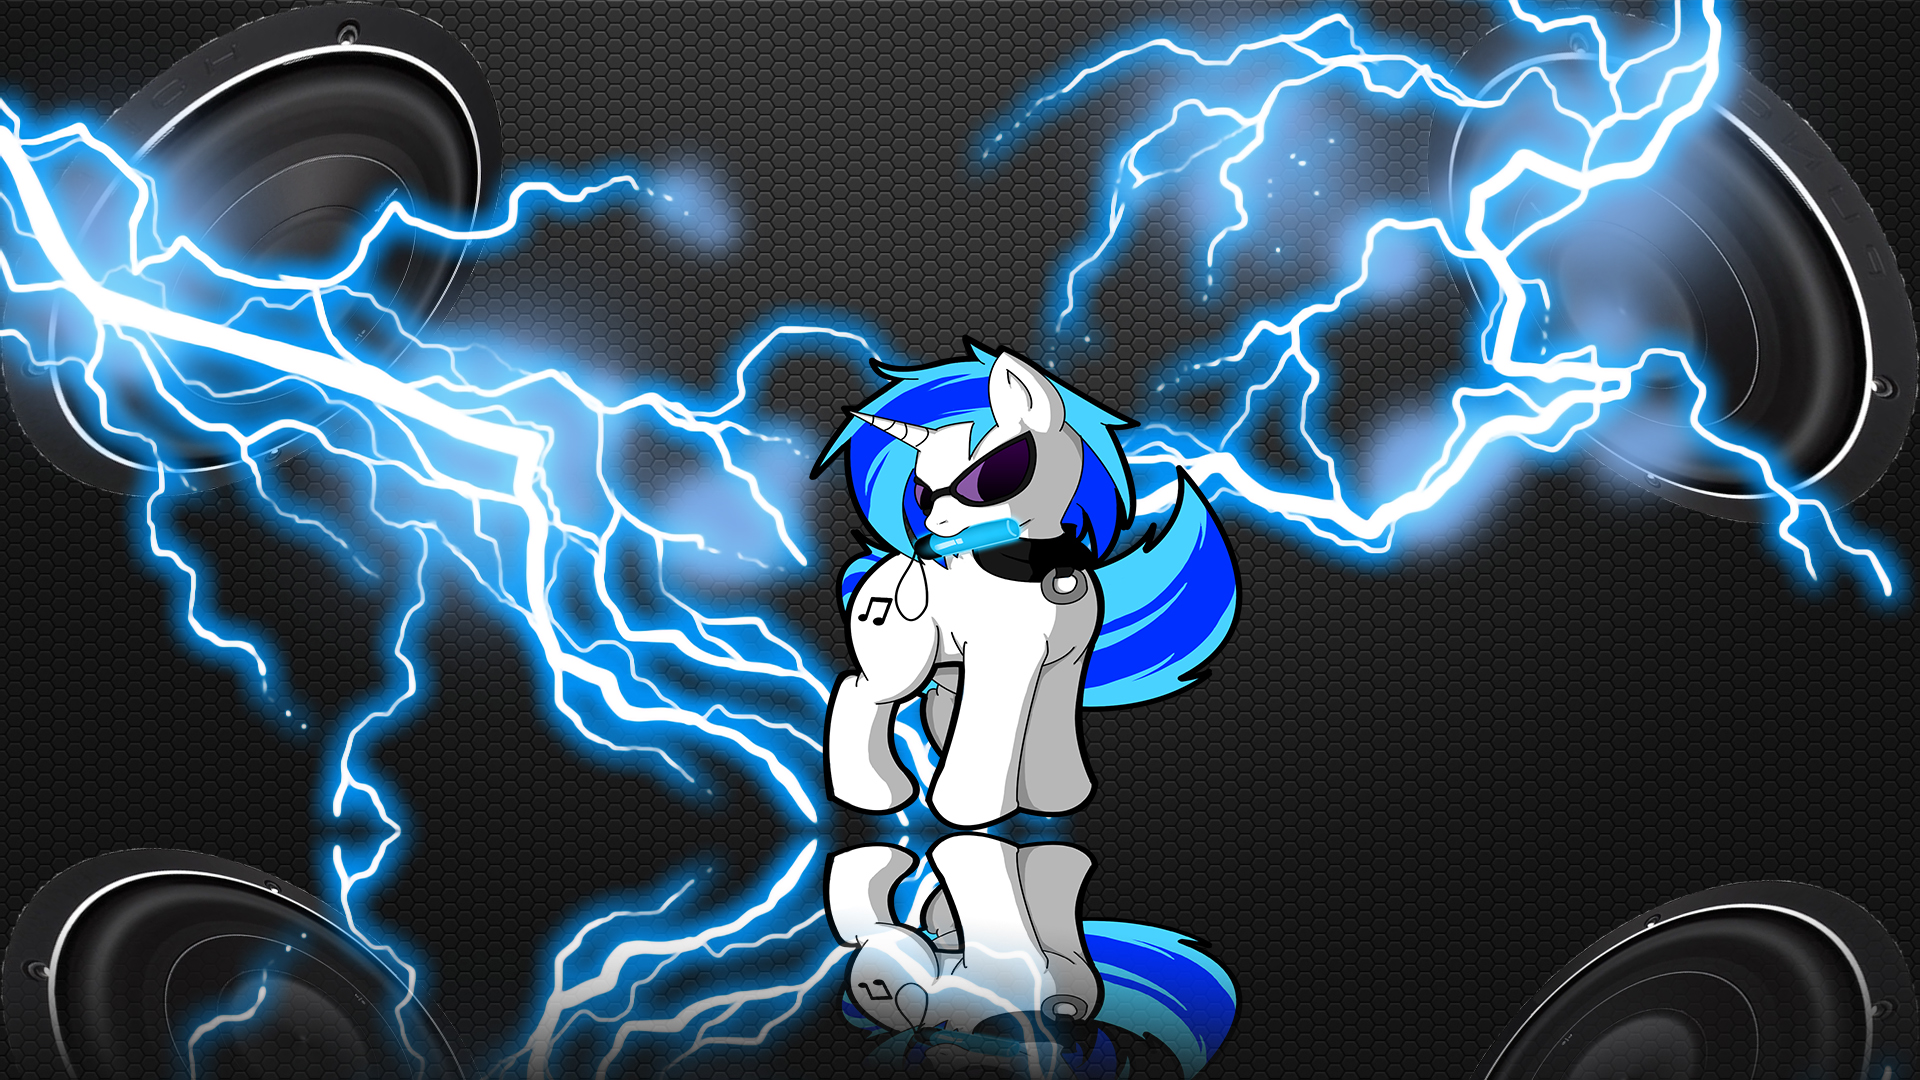 By Excrem By Excrem On Deviantart: Vinyl Scratch Extreme By GrandeForce On DeviantArt